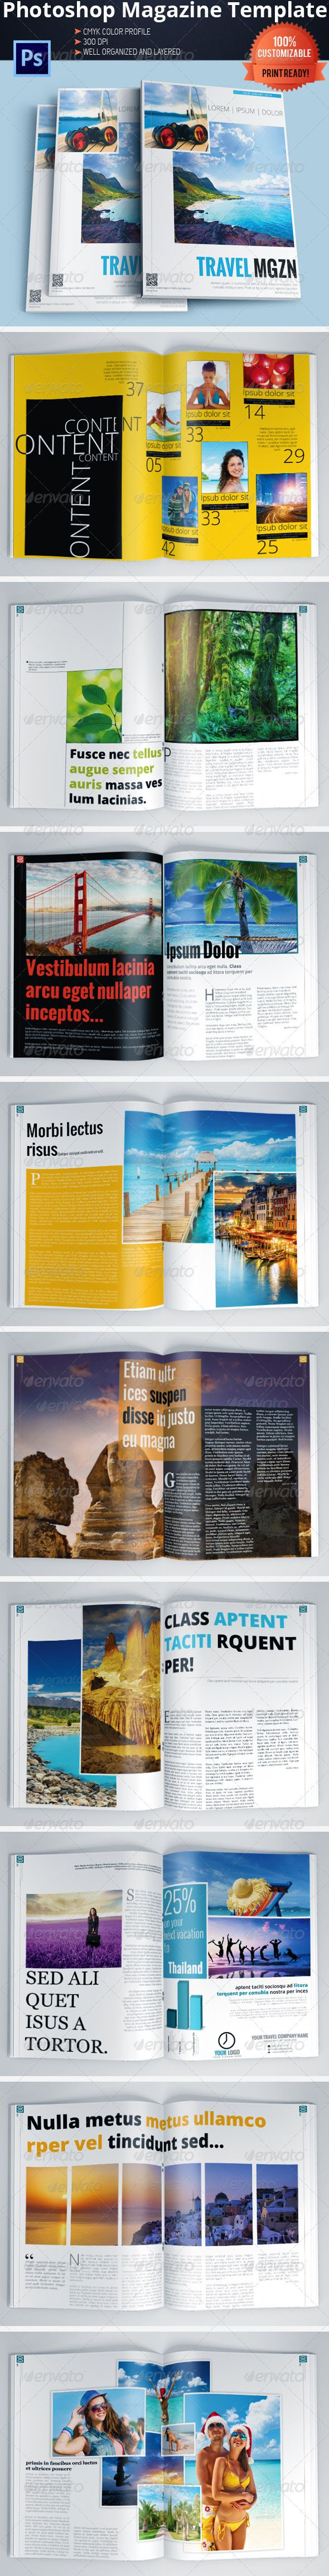 Travel Magazine Template — Photoshop PSD #photoshop #mag • Available here → https://graphicriver.net/item/travel-magazine-template/5857858?ref=pxcr